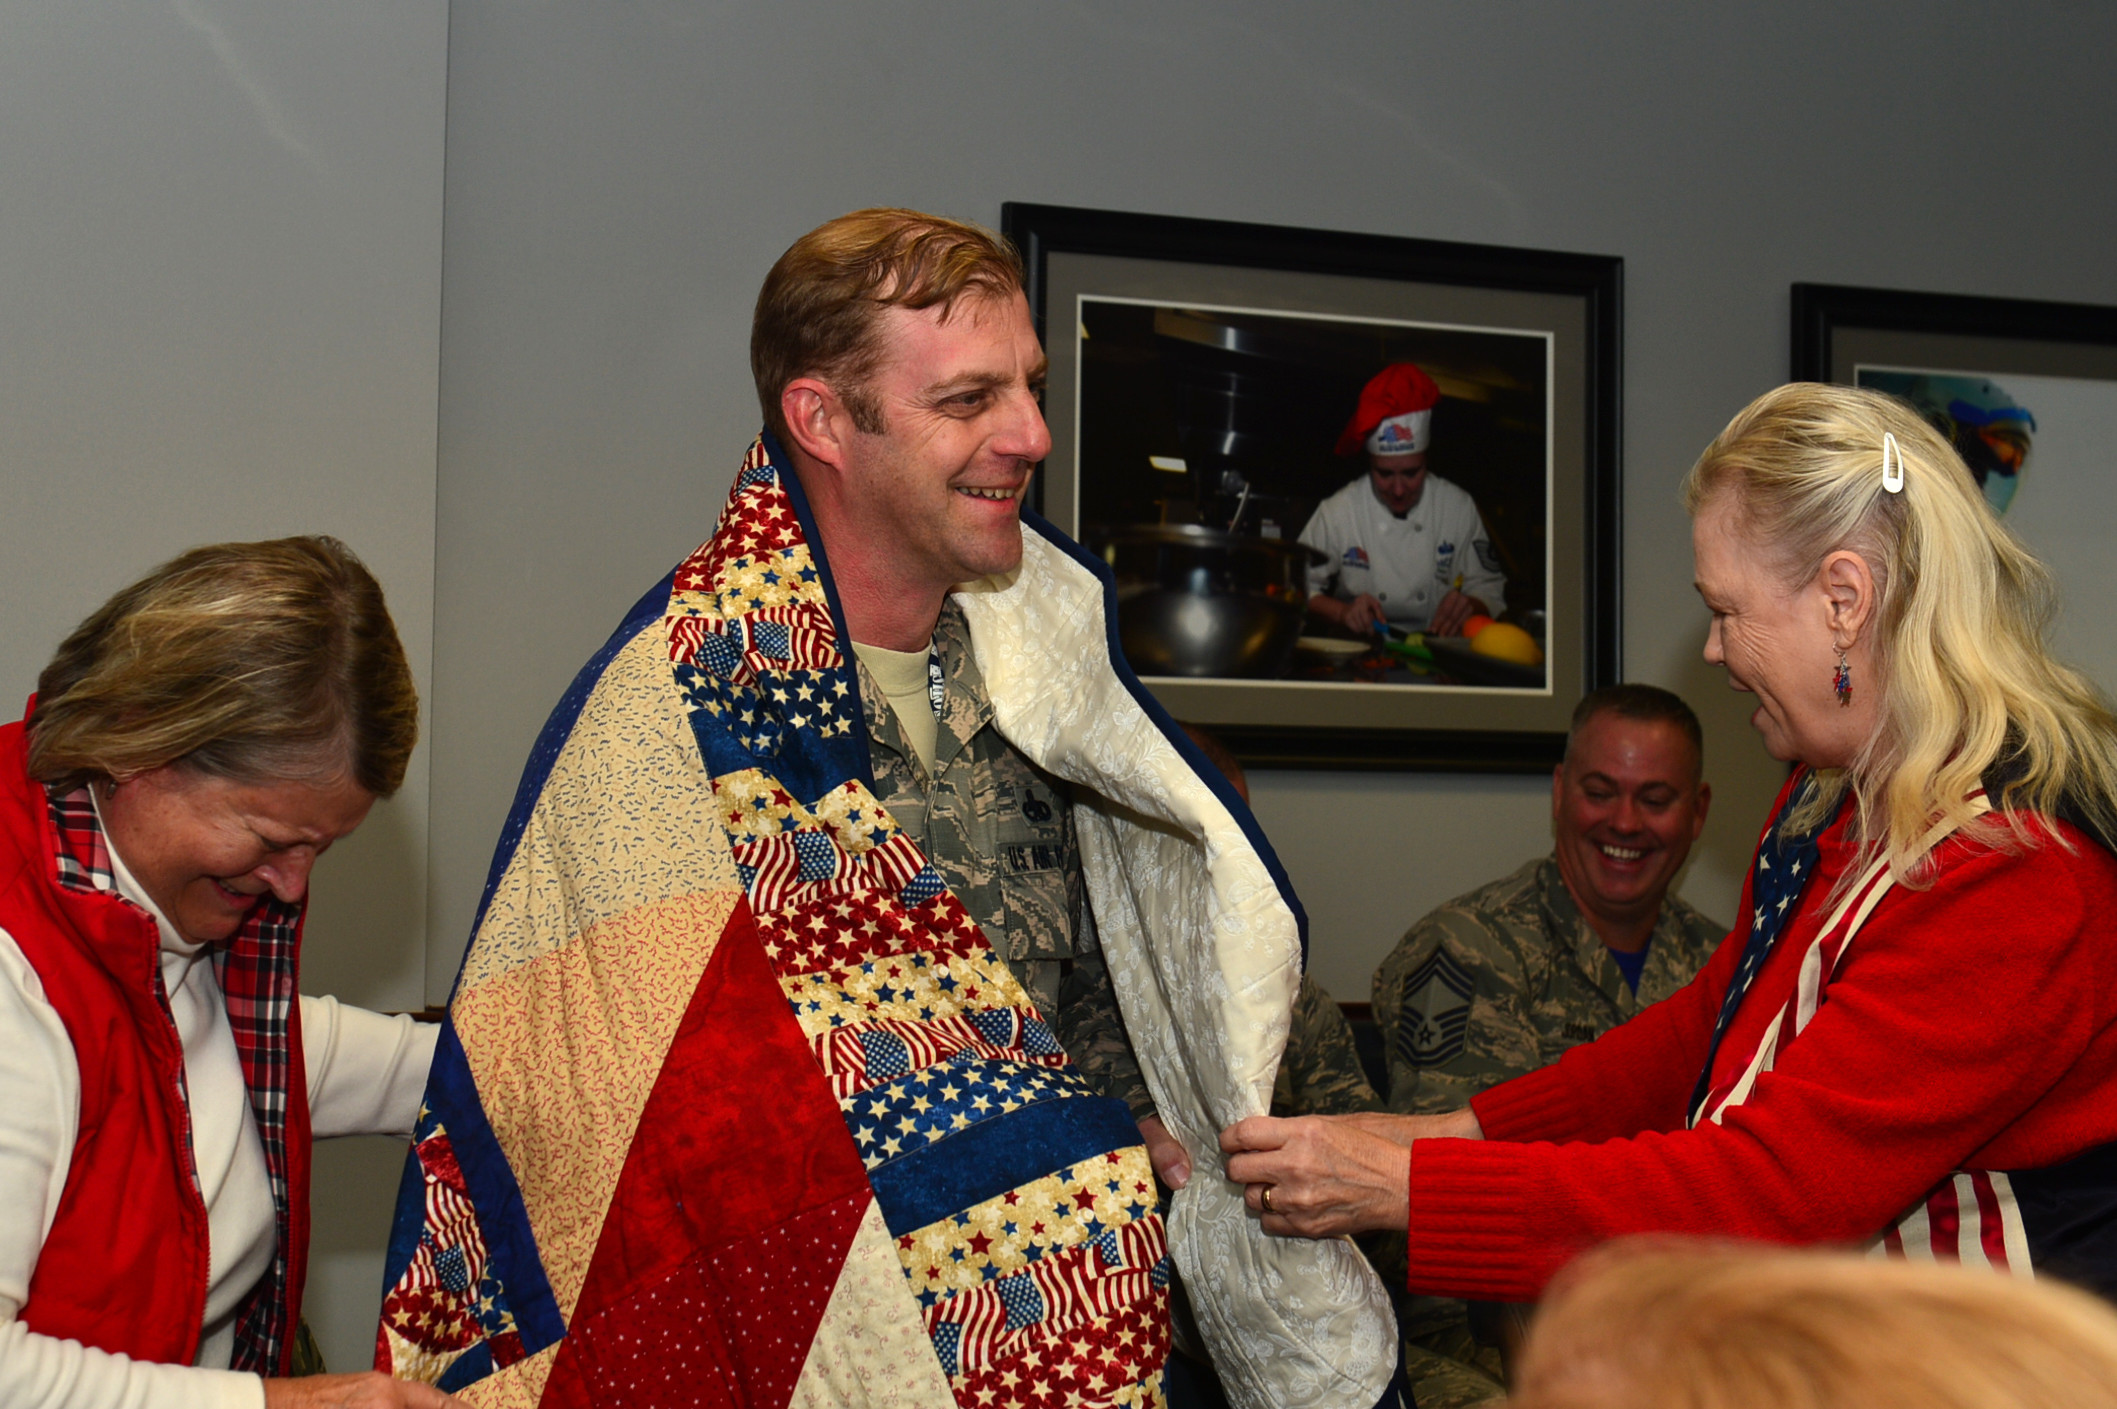 U.S. Air Force Senior Master Sgt. Daniel Henderson, 20th Aircraft Maintenance Squadron, 55th Aircraft Maintenance Unit, assistant superintendent, shares a laugh with Quilts of Valor Foundation members during a QOVF event at Shaw Air Force Base on Nov. 9. Henderson received recognition for his service while deployed overseas and his efforts in preserving the history of the 55th Fighter Squadron while stationed at Shaw.